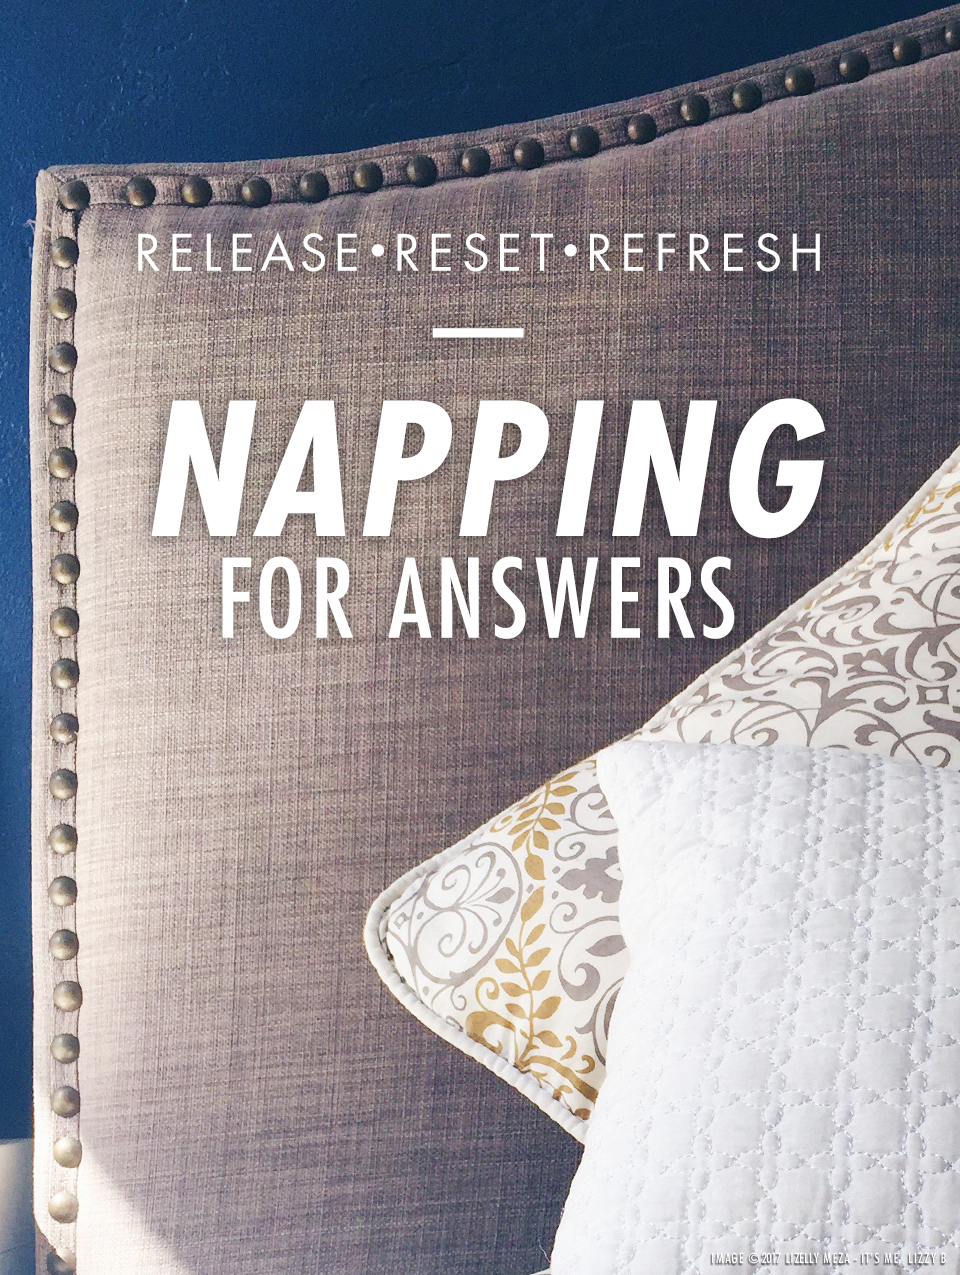 Napping for Answers—Release, Reset, Refresh // It's Me, Lizzy B - Musings on Life, Business, & The Pursuit of Curiosity // Personal blog of Lizelly Meza